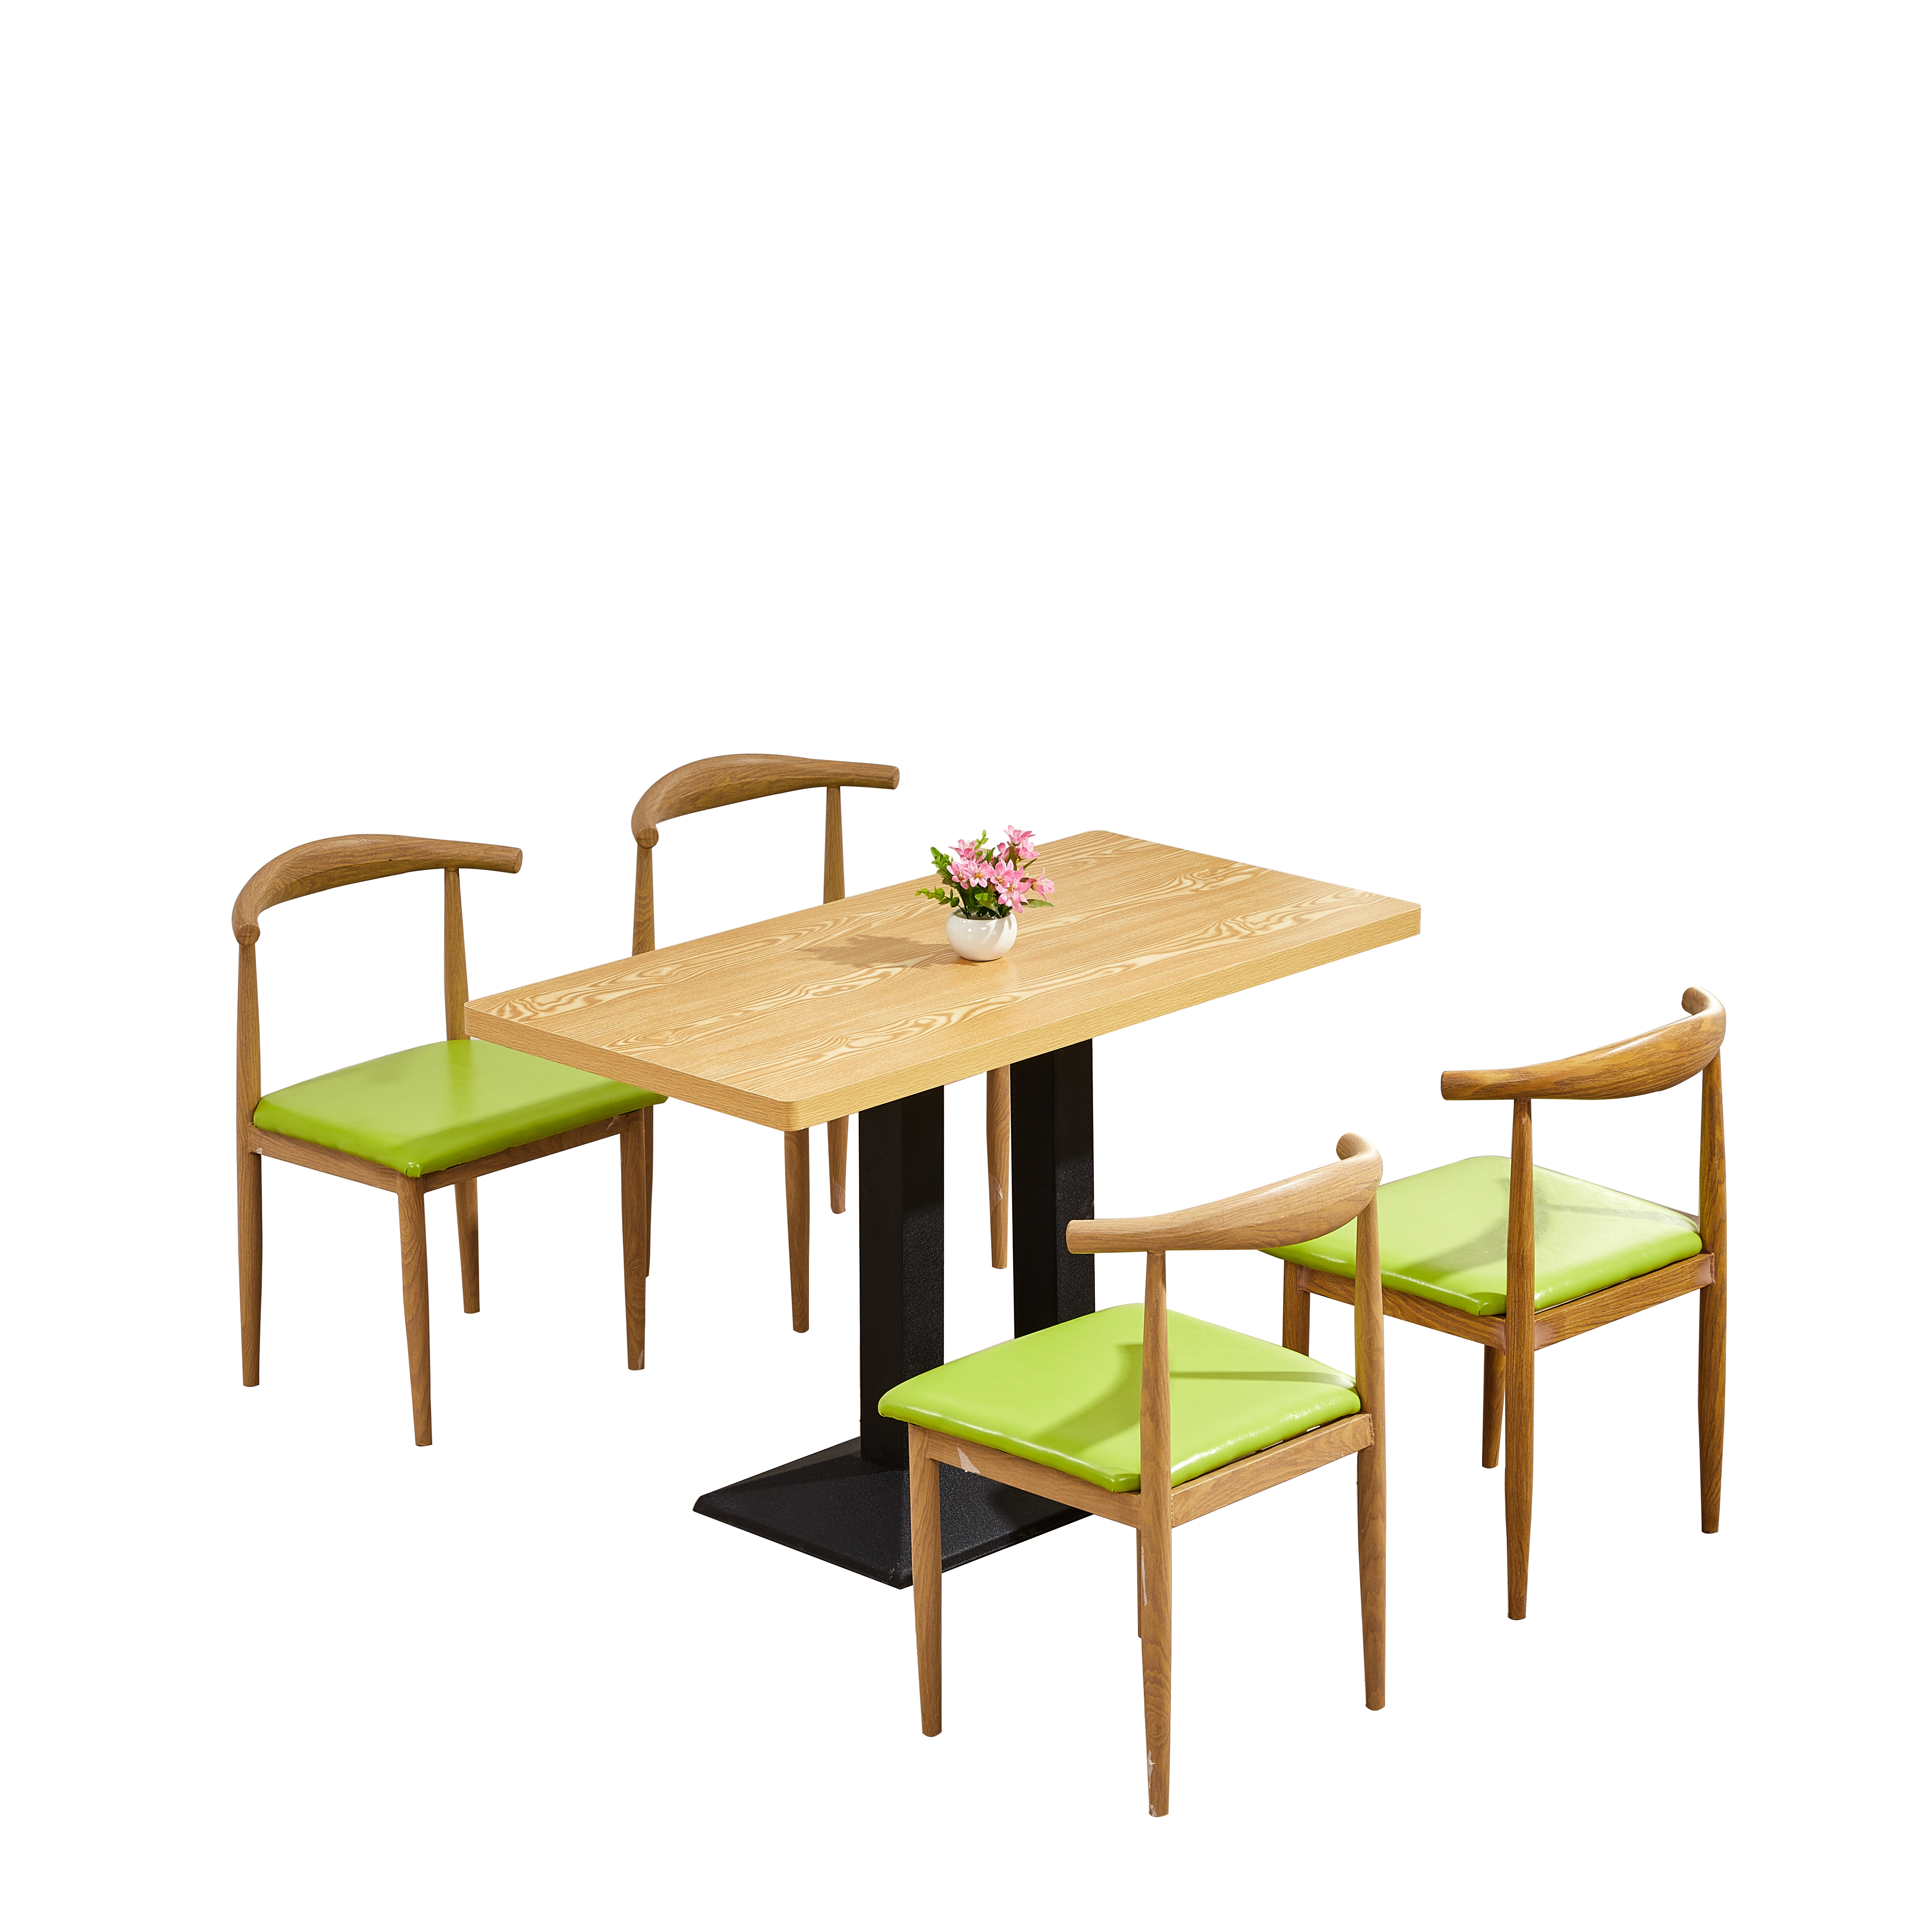 Fast Food Table And Chair Combination Snack Bar Cafe Restaurant Tea Shop Dining    Imitation Solid Wood Iron Horn C